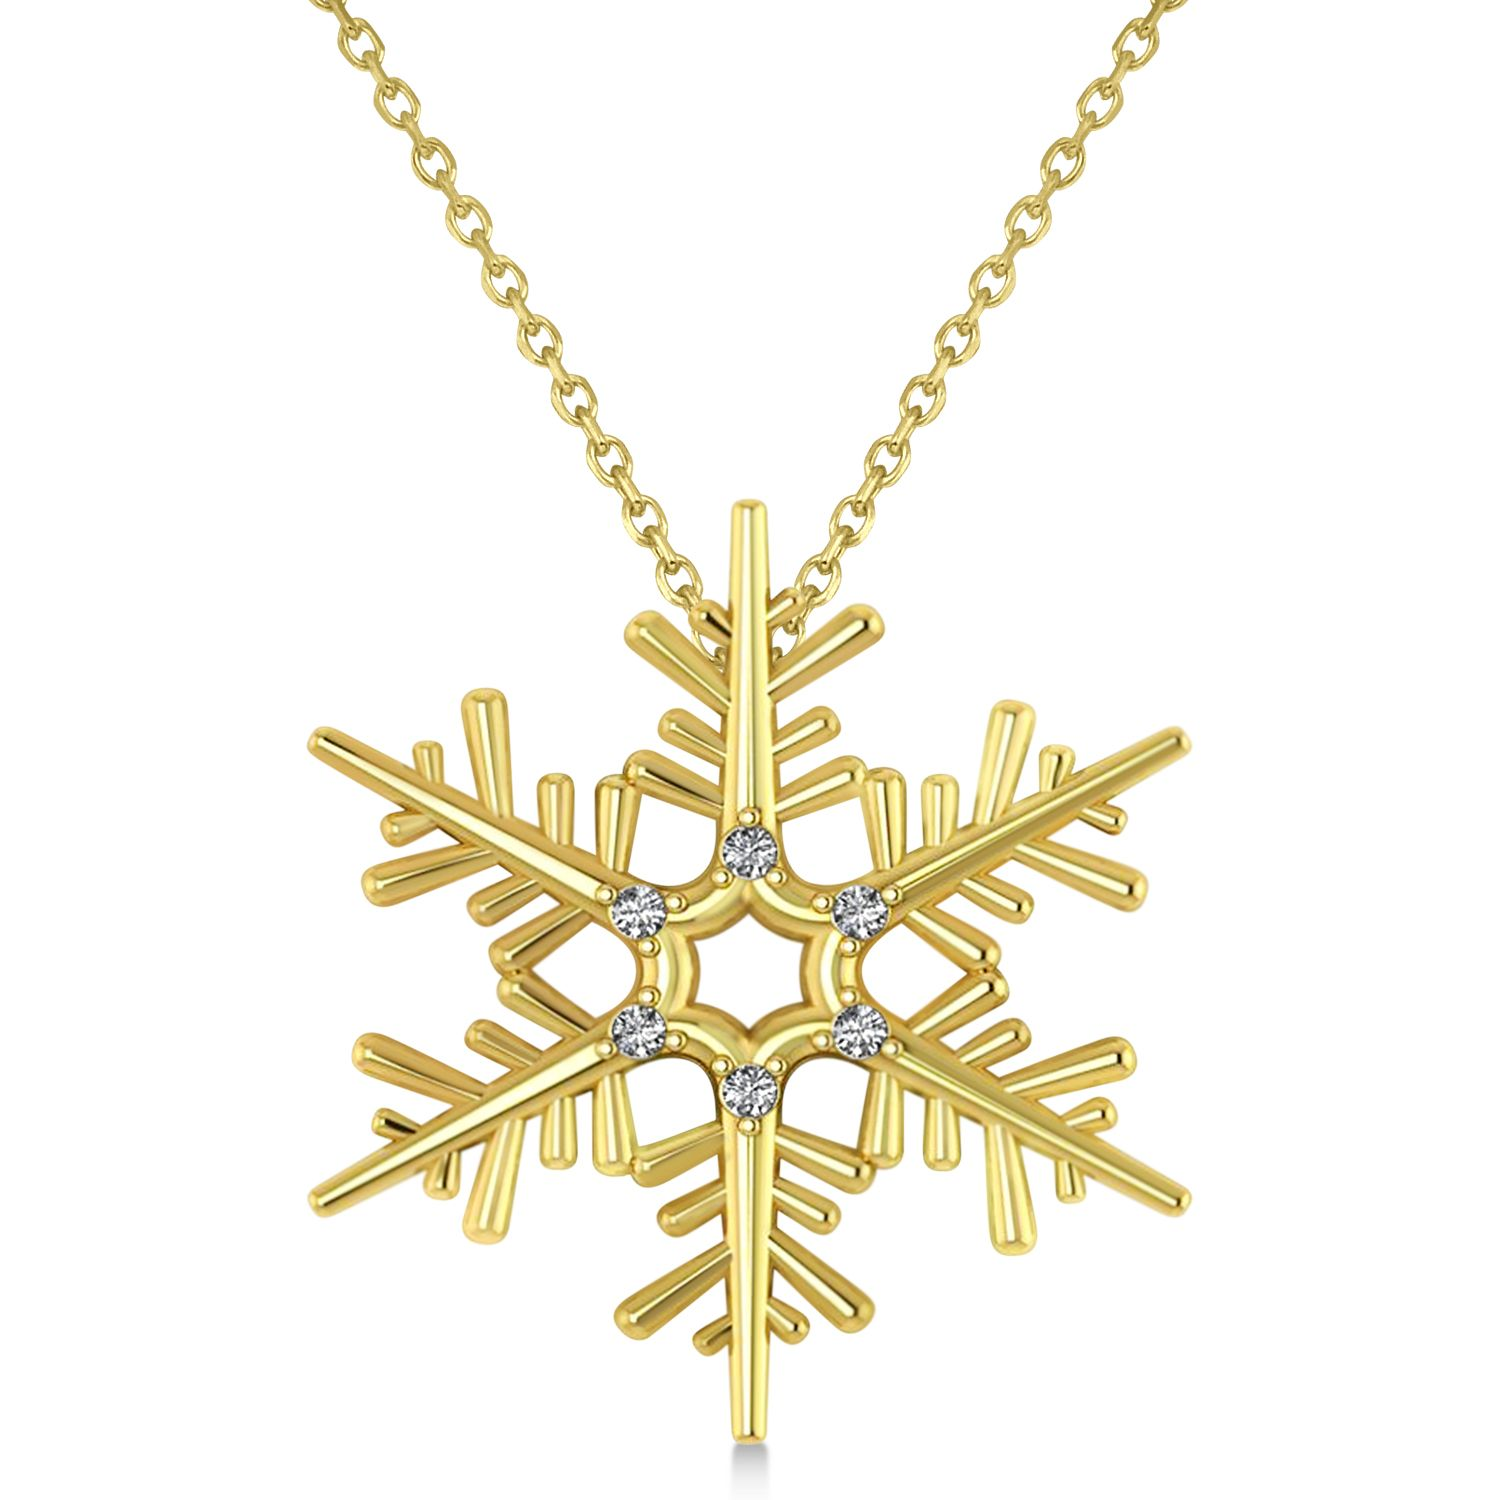 Diamond snowflake pendant necklace 14k yellow gold 006ct diamond snowflake pendant necklace 14k yellow gold 006ct 400 approx love mozeypictures Gallery